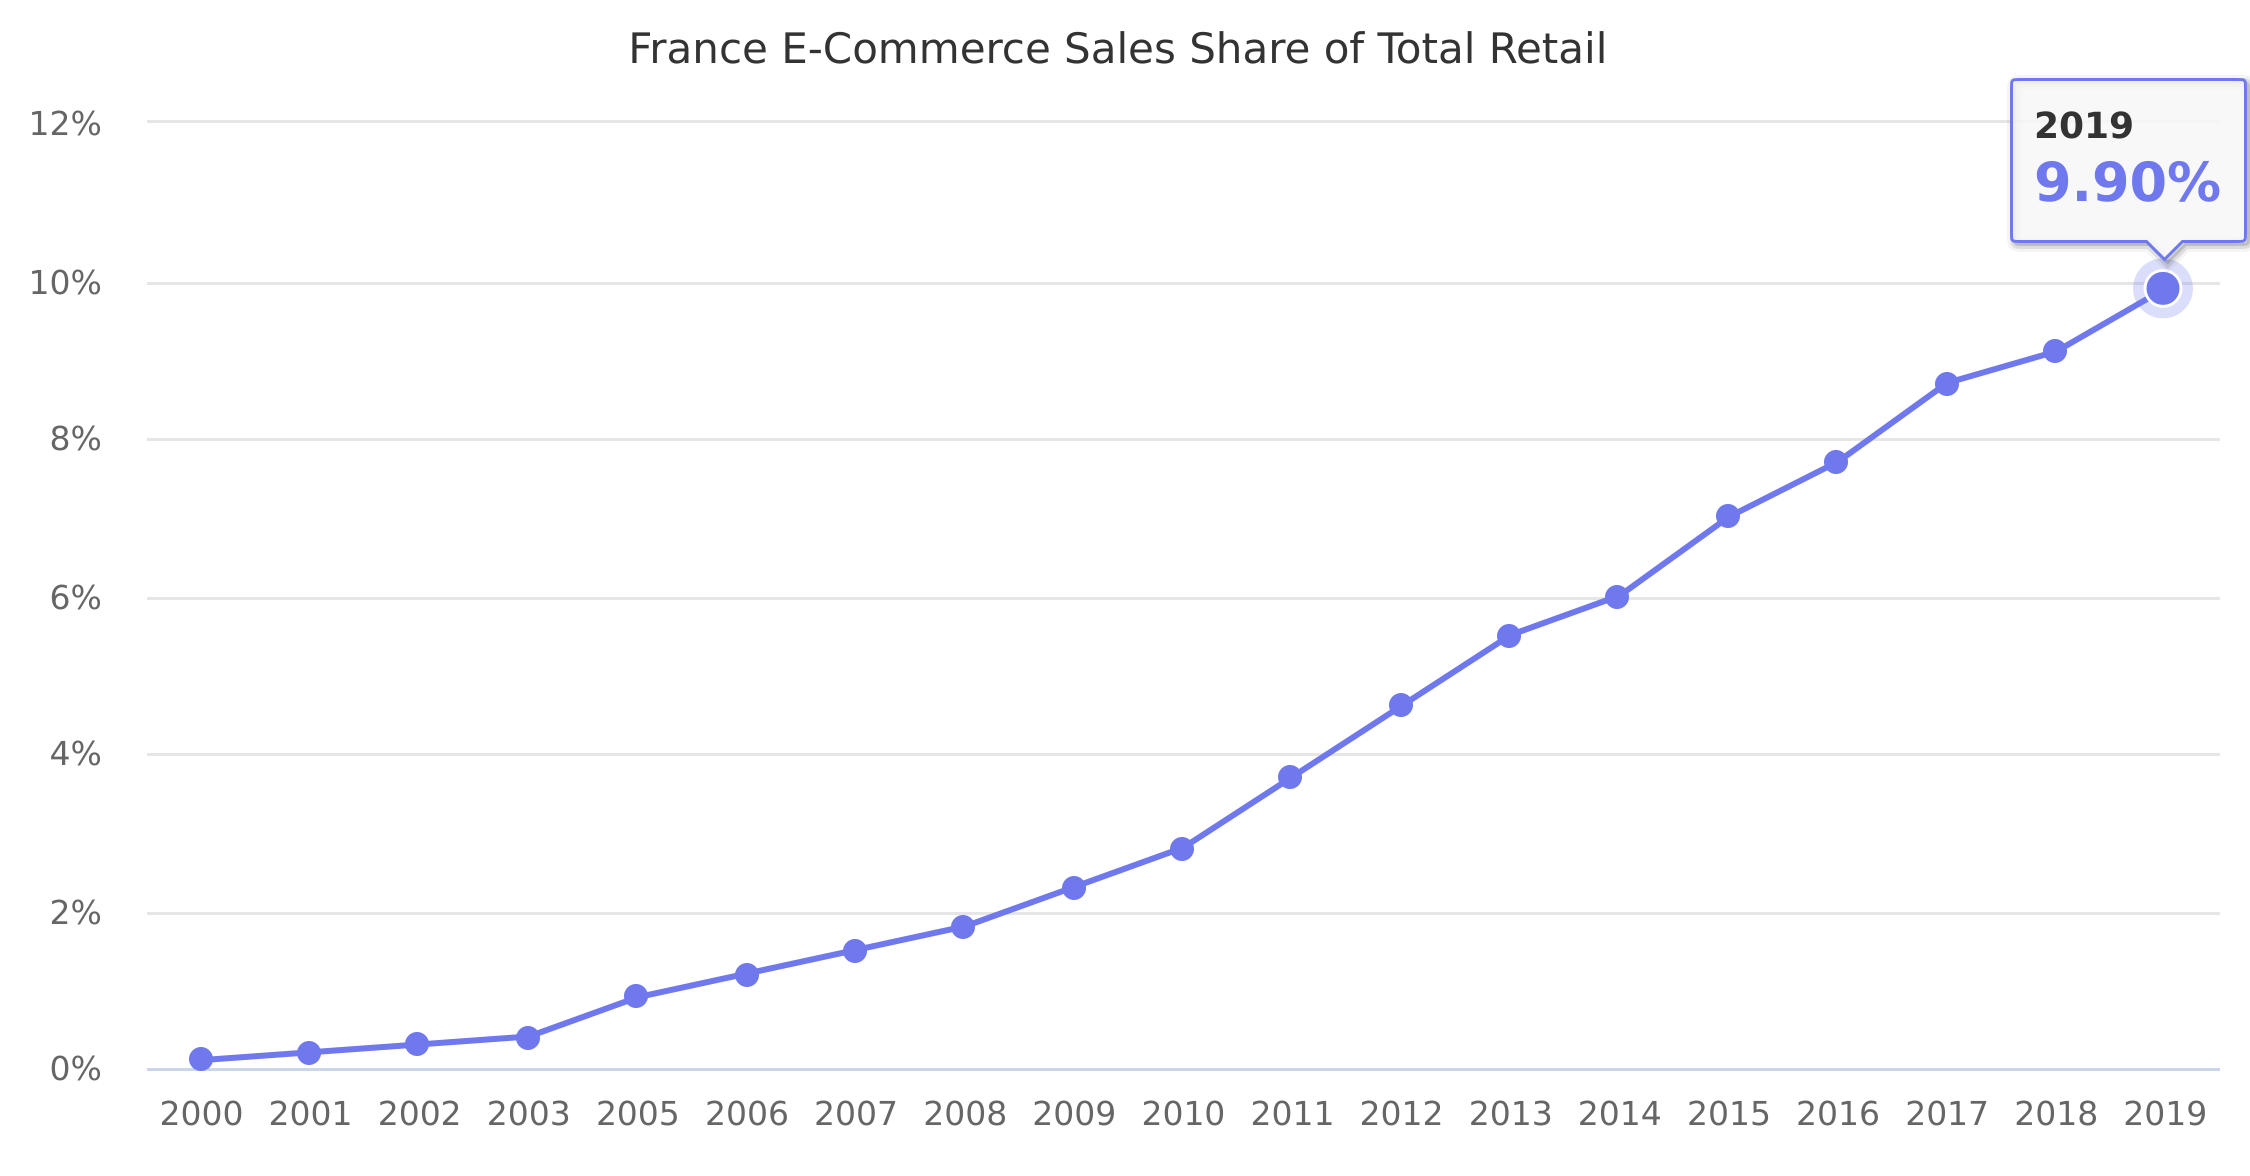 France E-Commerce Sales Share of Total Retail